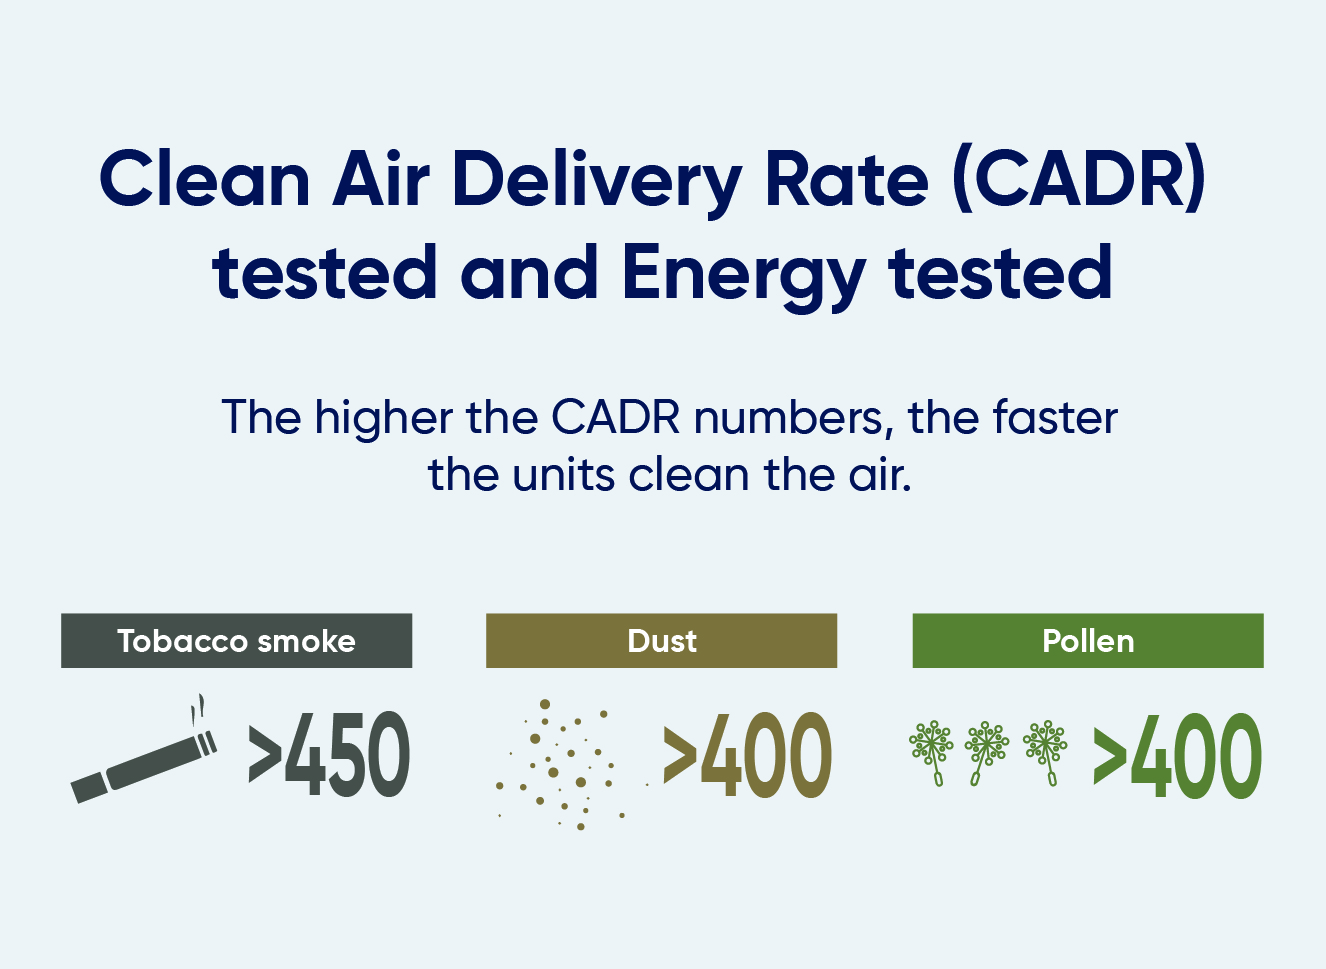 Blueair Info graphic:  Clean air delivery rate tested (CARD) The higher the CADR numbers, the faster the units clean the air. Tobacco smoke > 450, Dust >400, polle >400